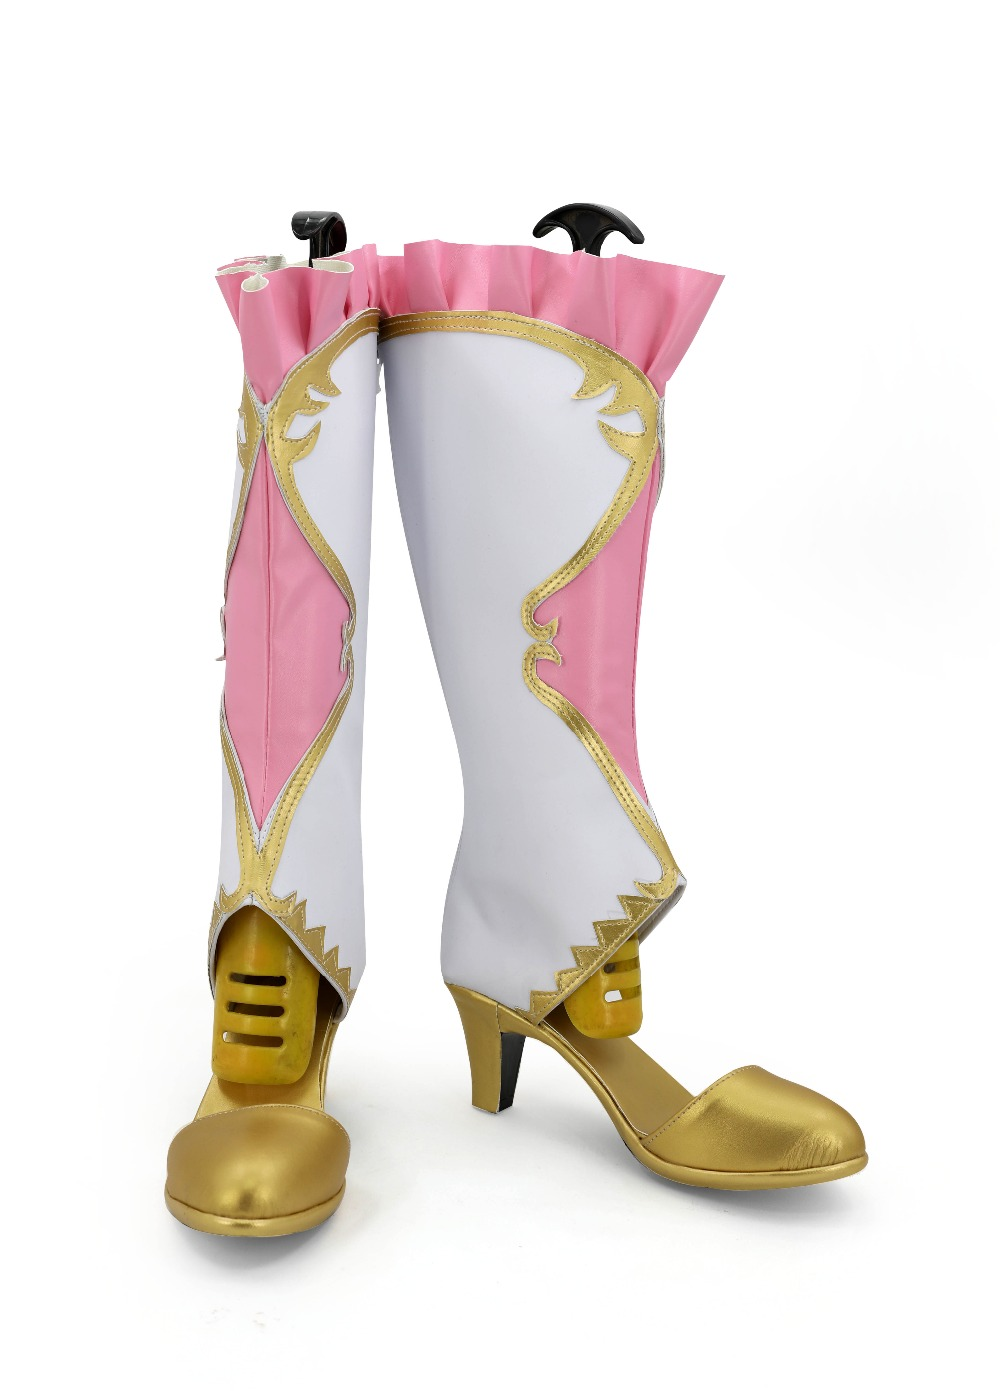 Anime Lovelive Sonoda Umi Cosplay Shoes Boots Girls Pink Boots Halloween Cosplay